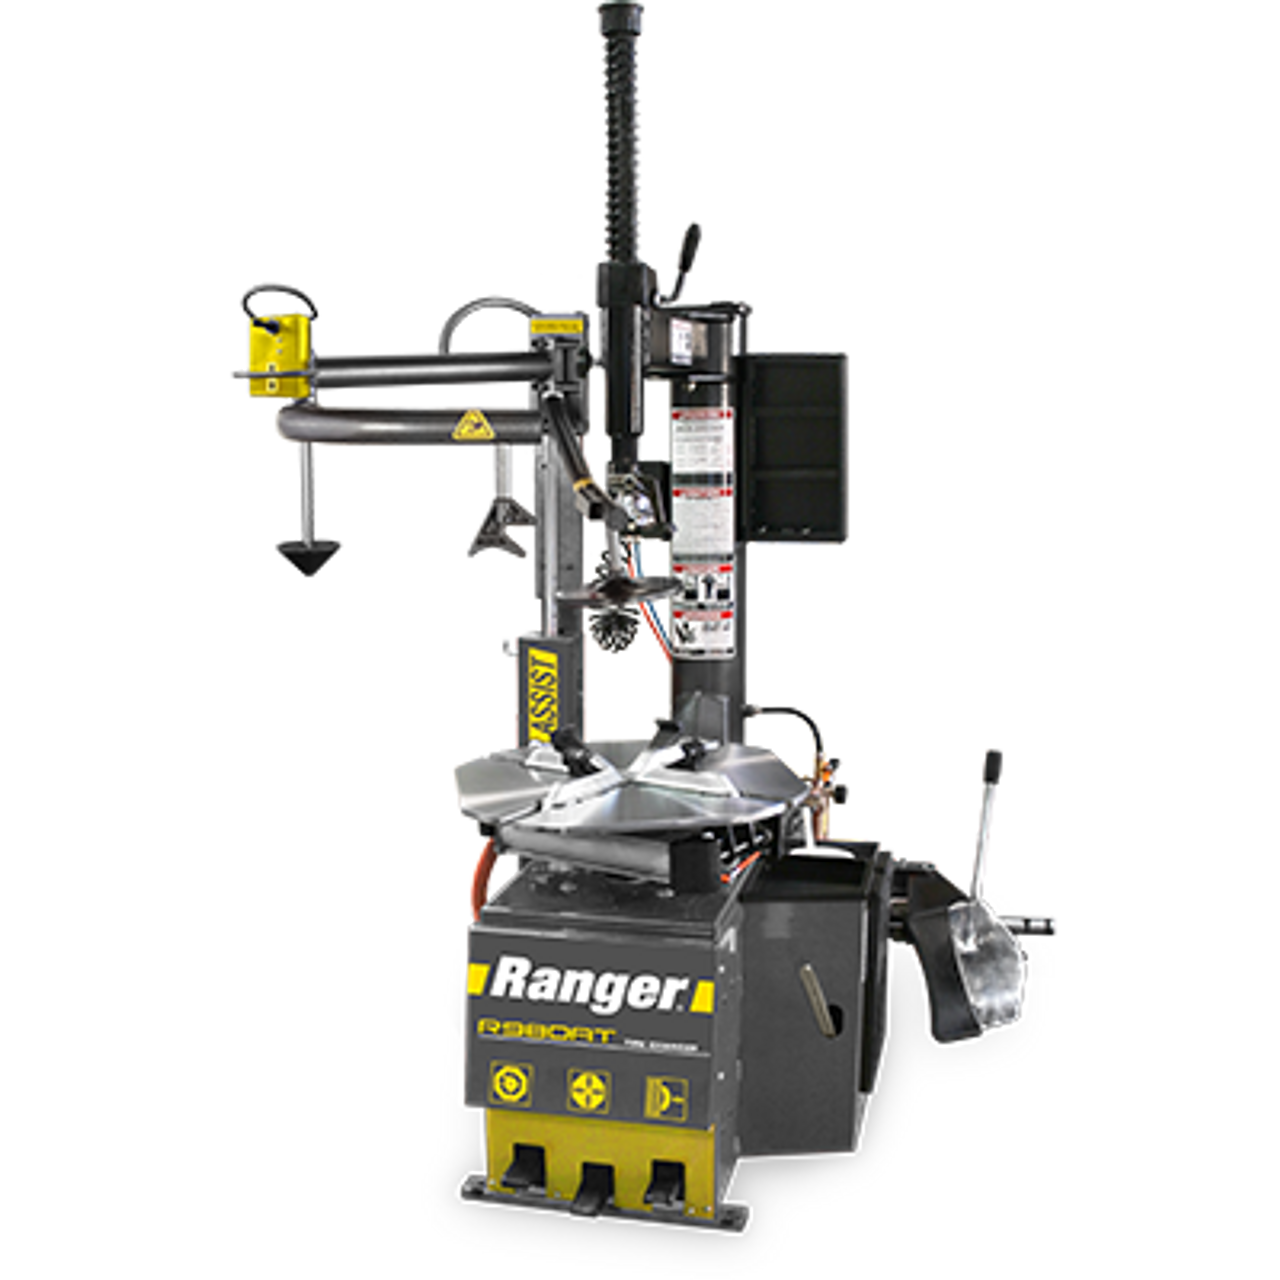 Ranger-Tire-Changer-R980AT-5140265